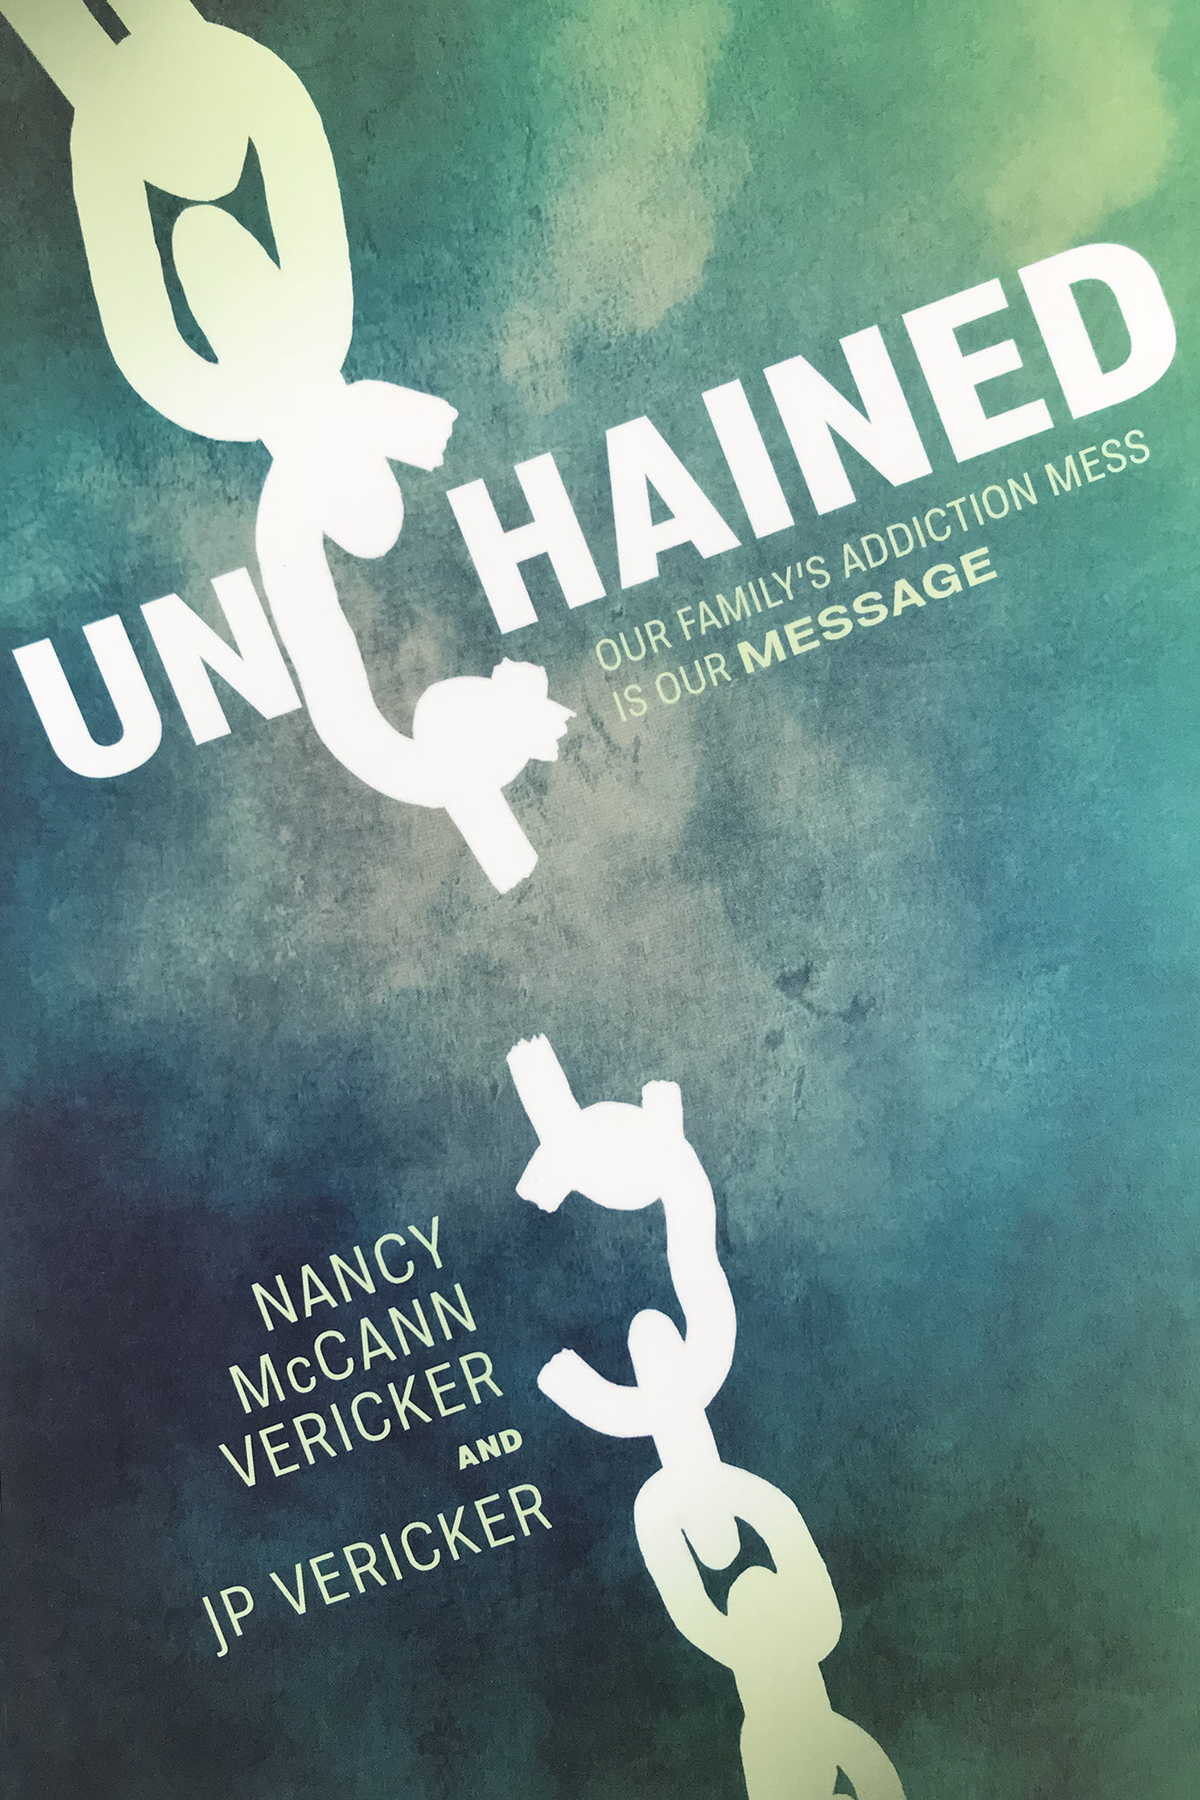 The cover of Nancy and J.P. Vericker's book, Unchained